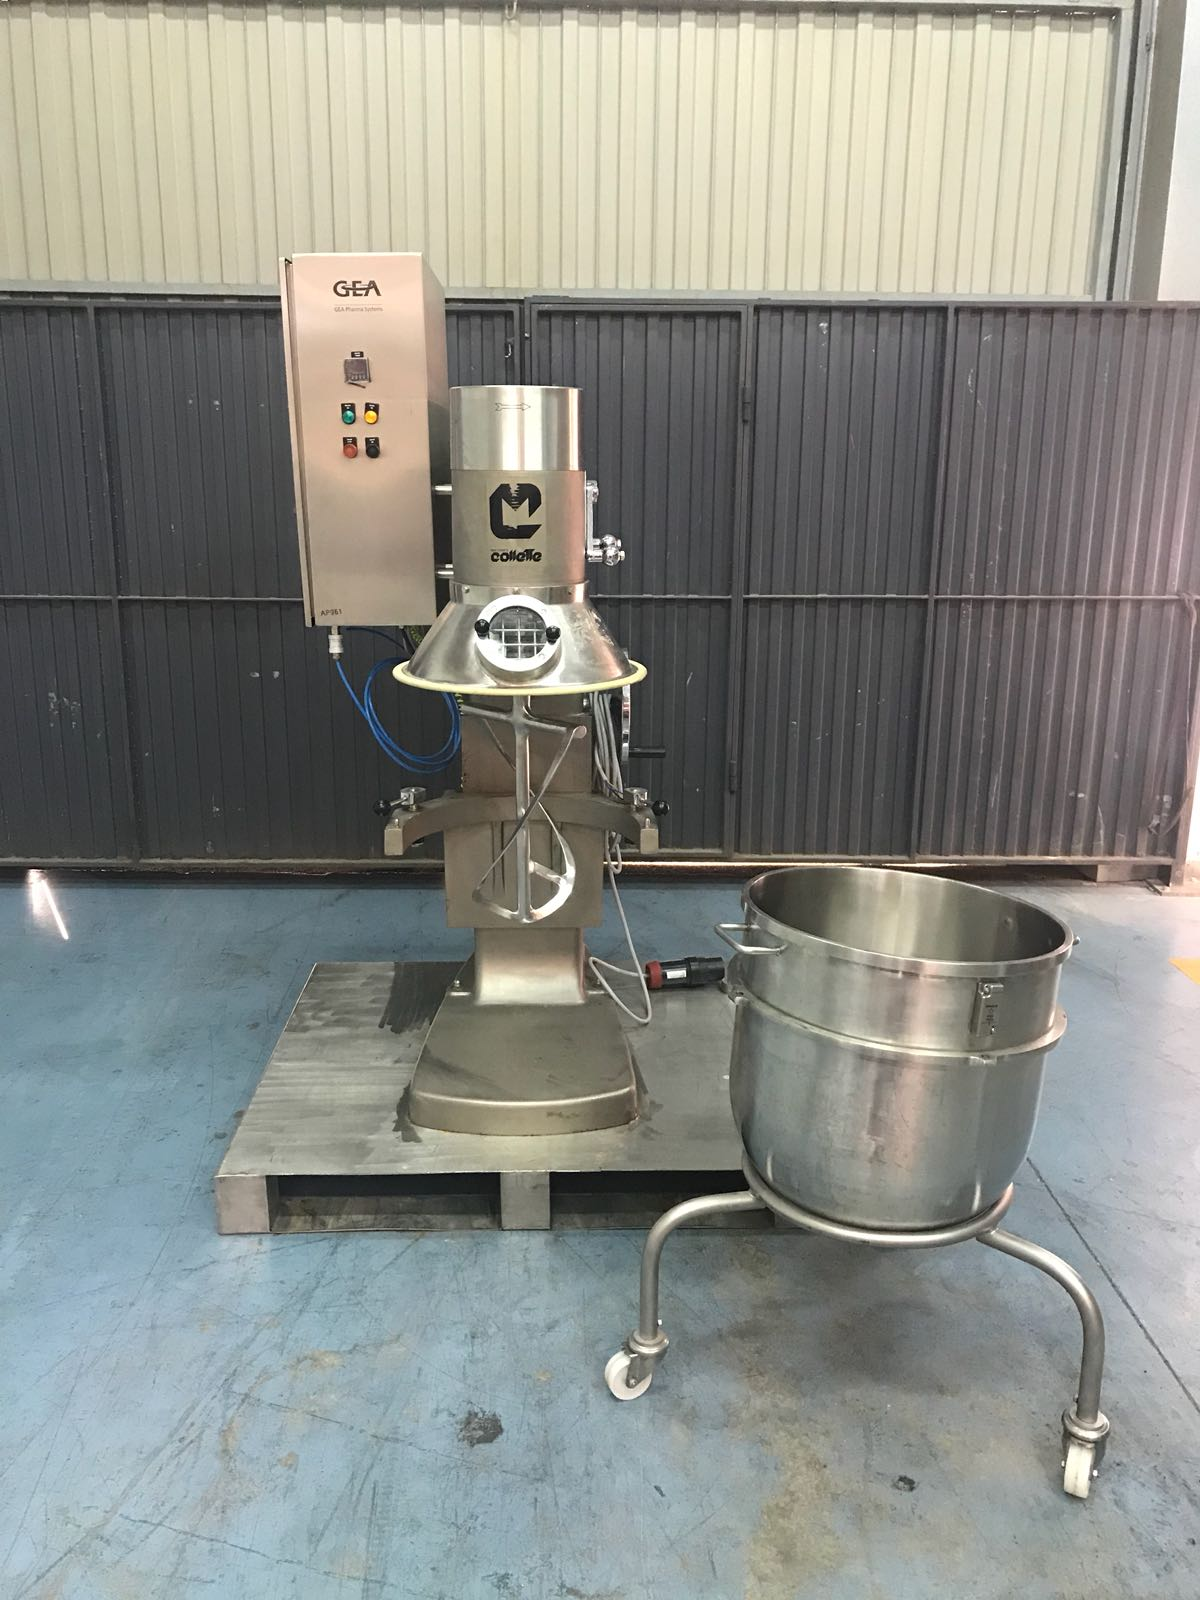 USED GEA COLLETTE MP90 MIXER - Comquima Europe, Second hand equipment